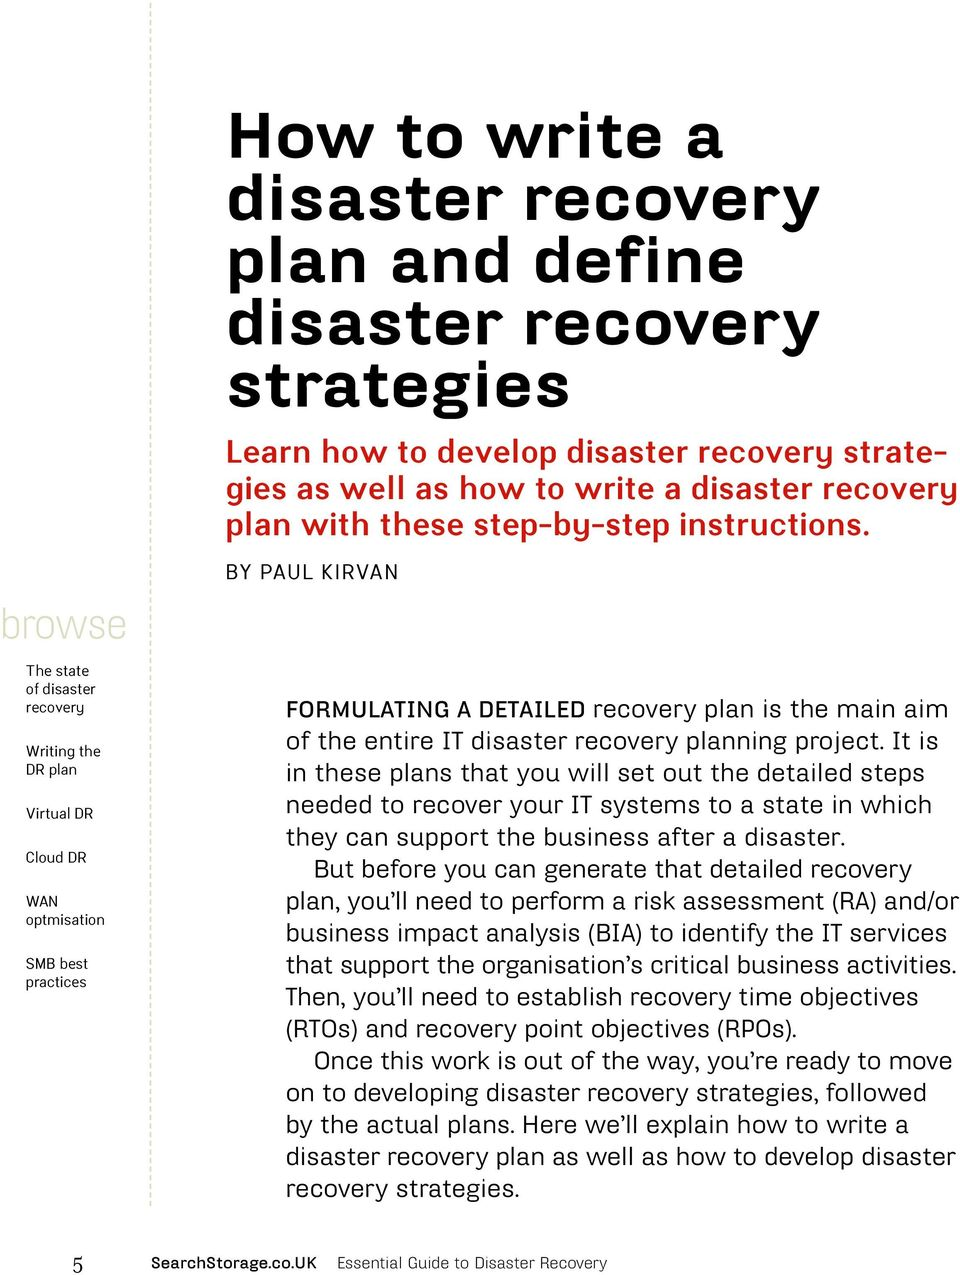 It is in these plans that you will set out the detailed steps needed to recover your IT systems to a state in which they can support the business after a disaster.